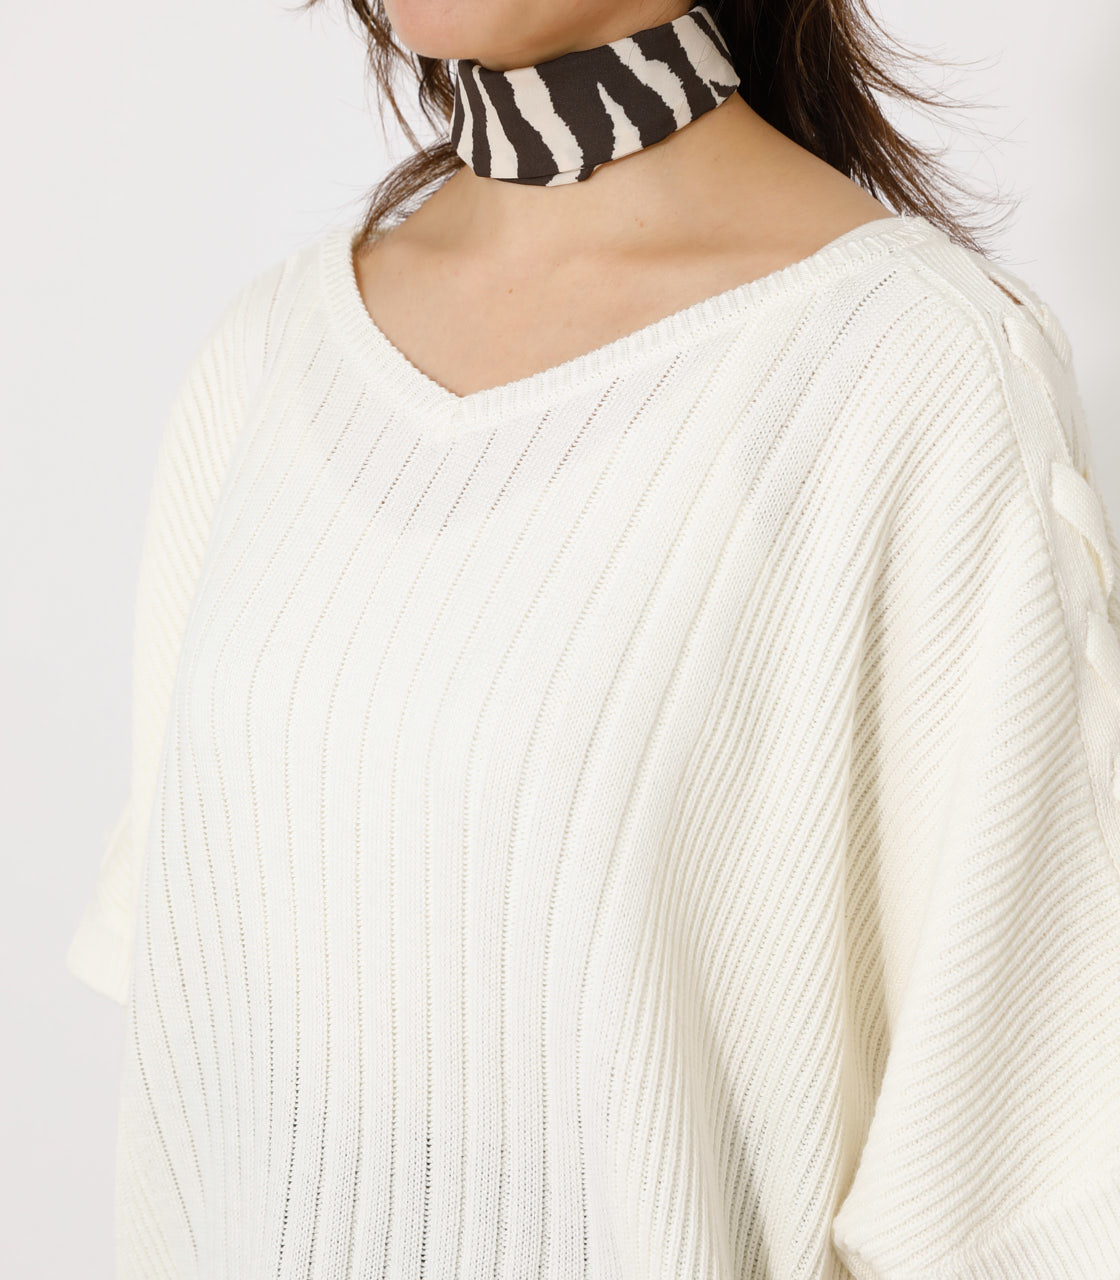 2WAY SHOULDER LACE-UP KNIT/2WAYショルダーレースアップニット 詳細画像 O/WHT 7